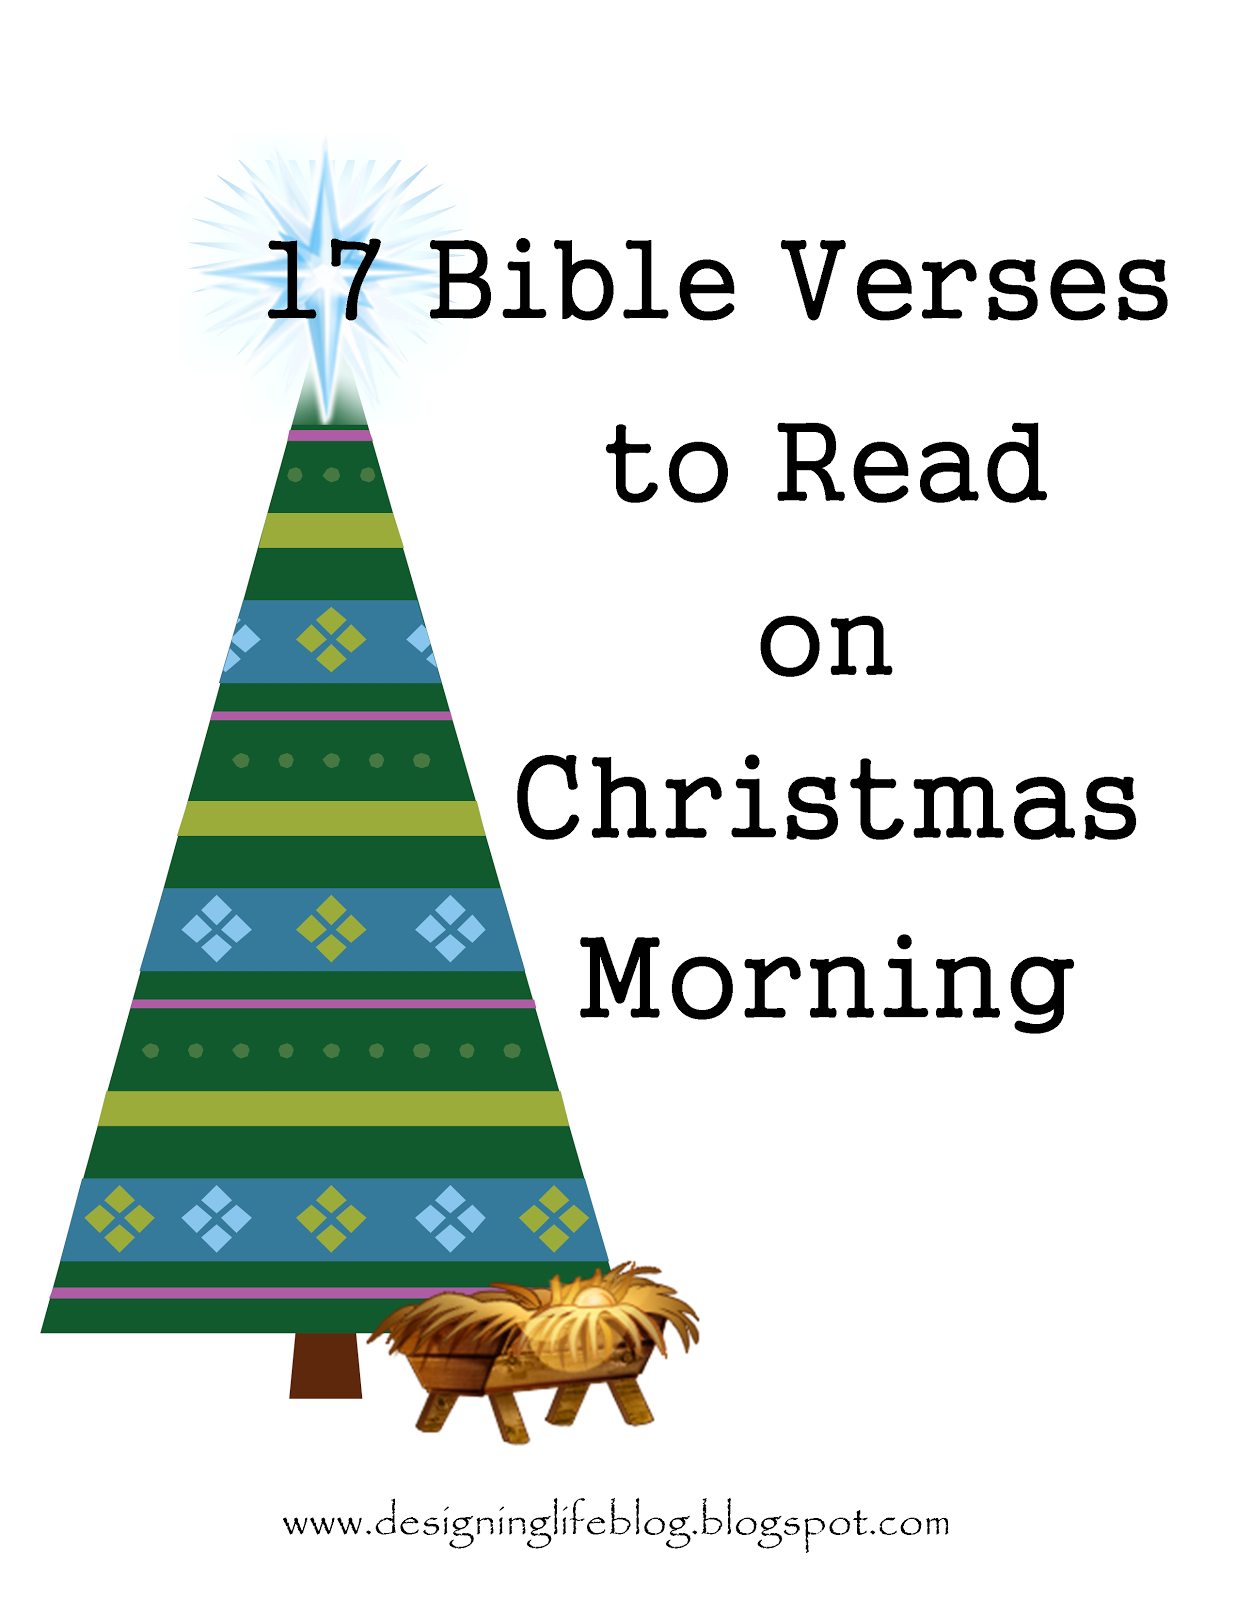 17 bible verses to read on christmas morning or read one each day leading up to christmas